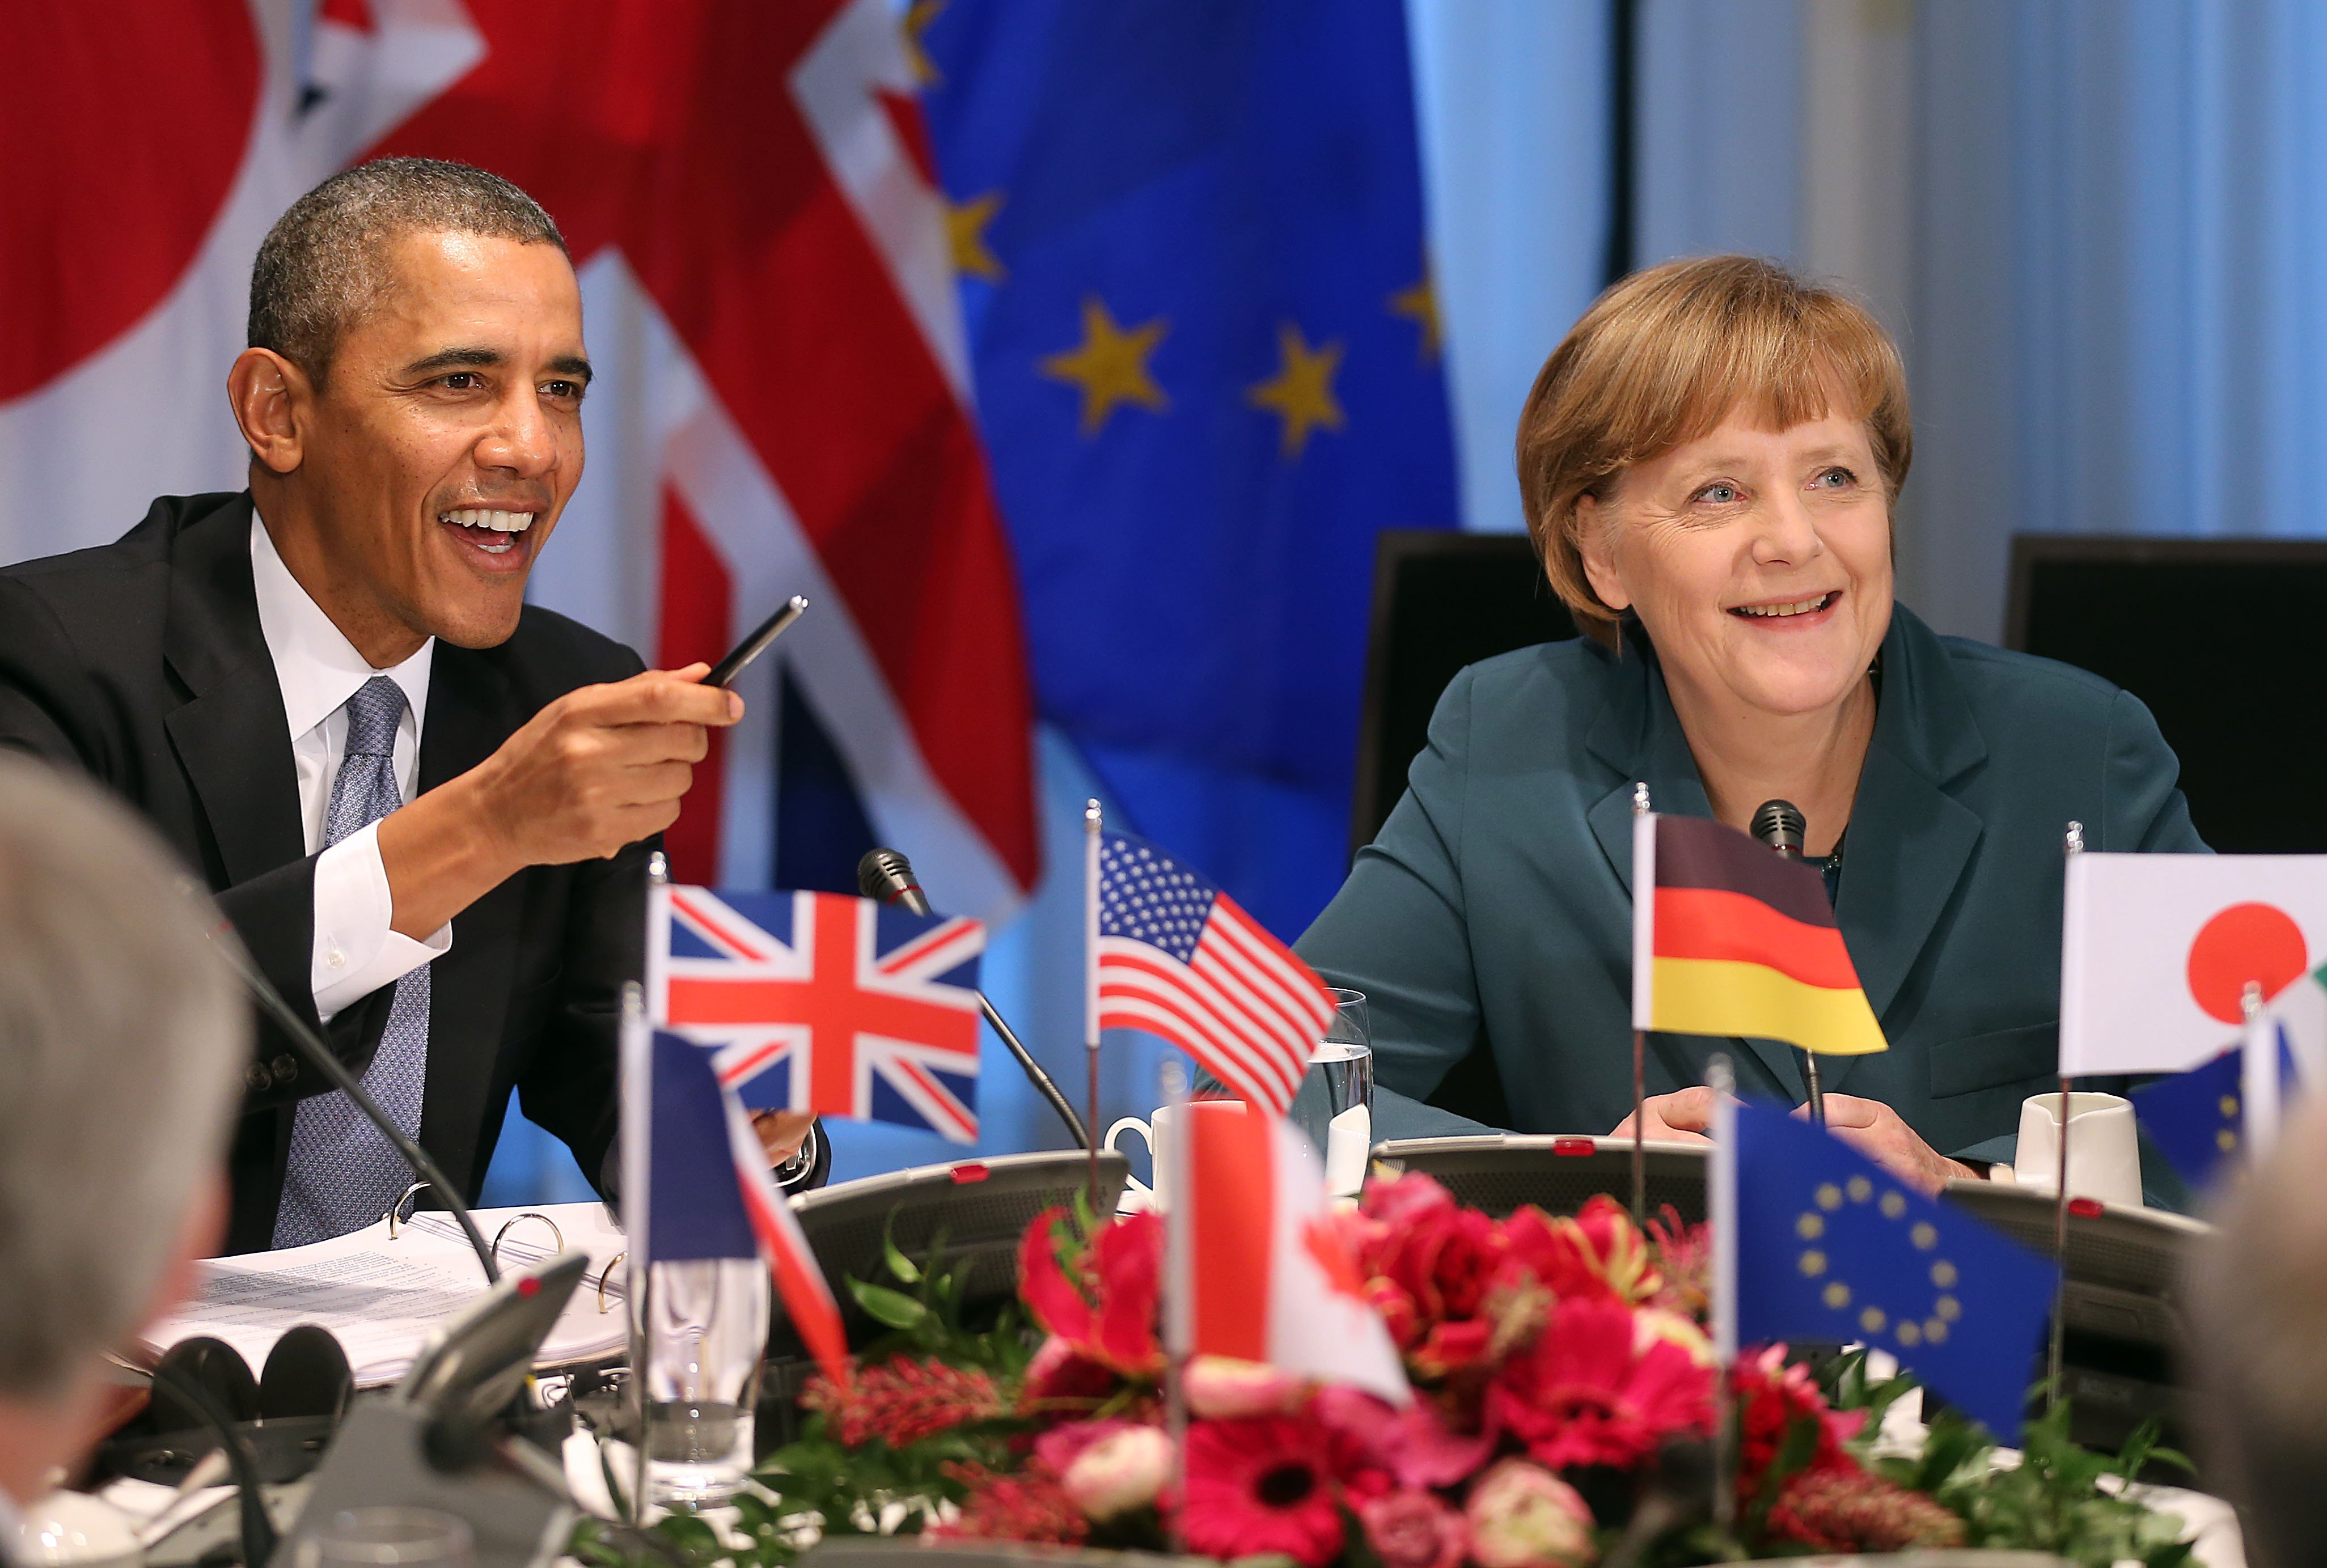 President Barack Obama and Chancellor Angela Merkel at a meeting of the G-7 in the Hague on March 24, 2014